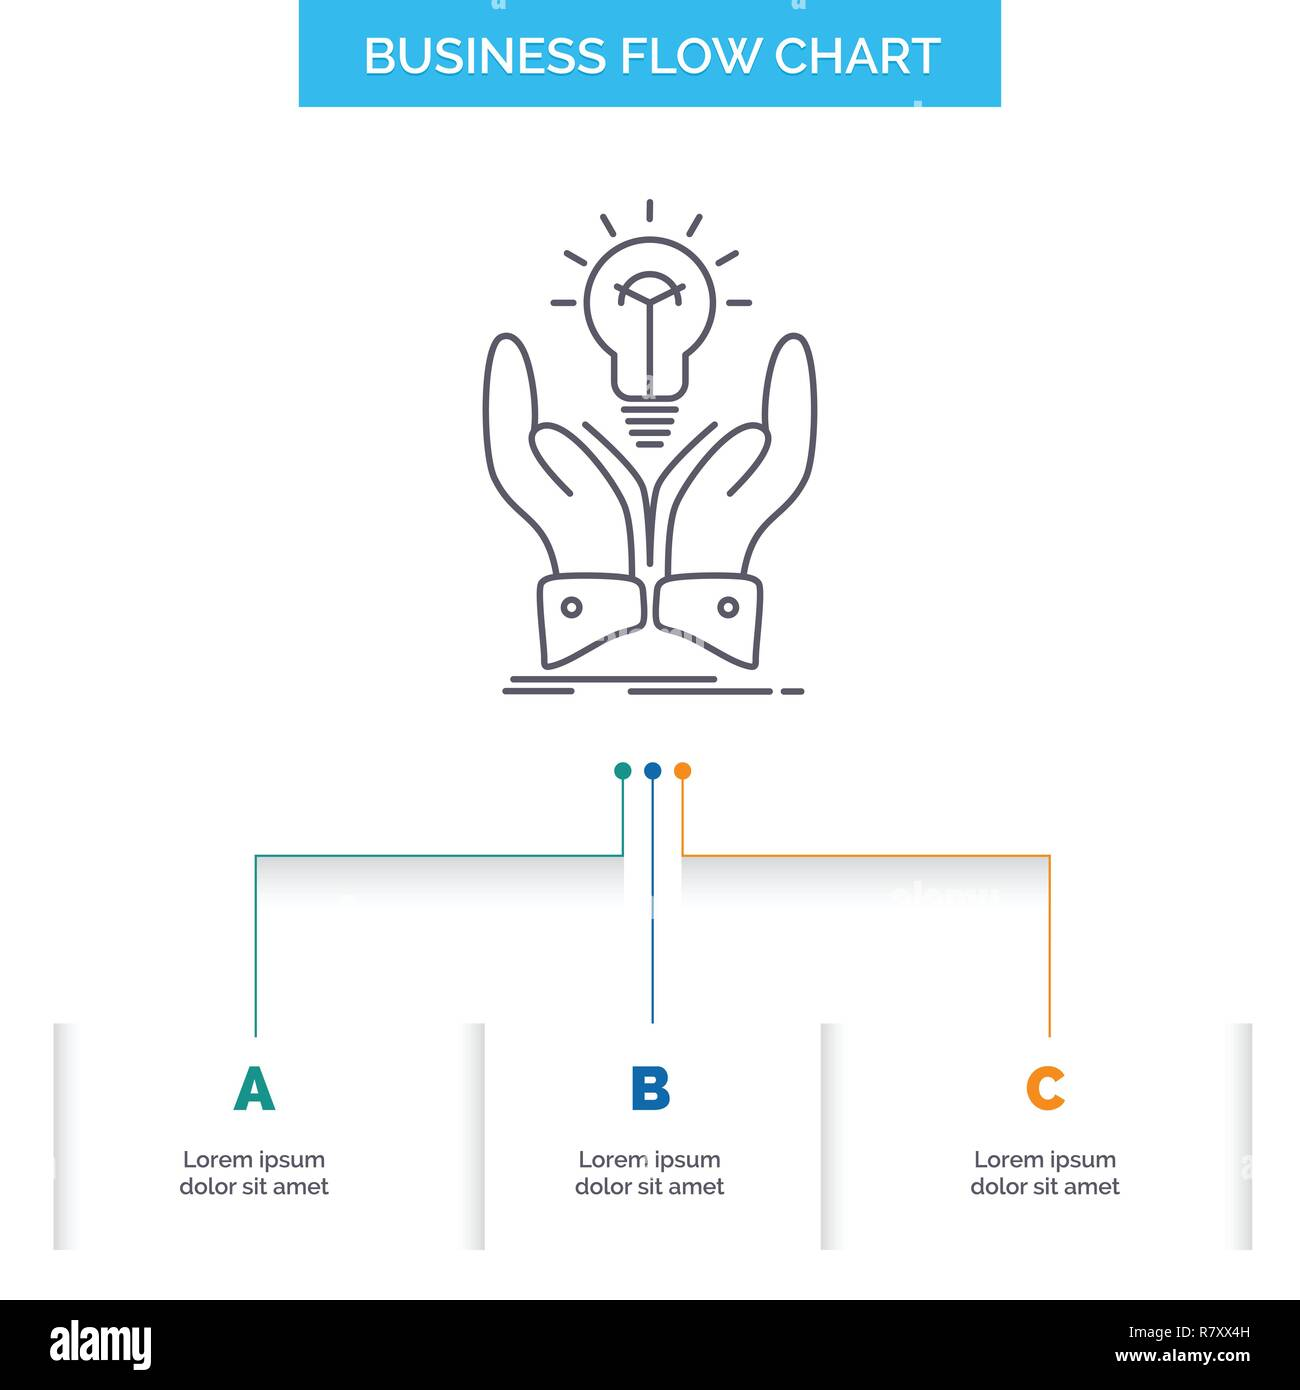 Chart design ideas Presentation Idea Ideas Creative Share Hands Business Flow Chart Design With Steps Line Icon For Presentation Background Template Place For Text Alamy Idea Ideas Creative Share Hands Business Flow Chart Design With